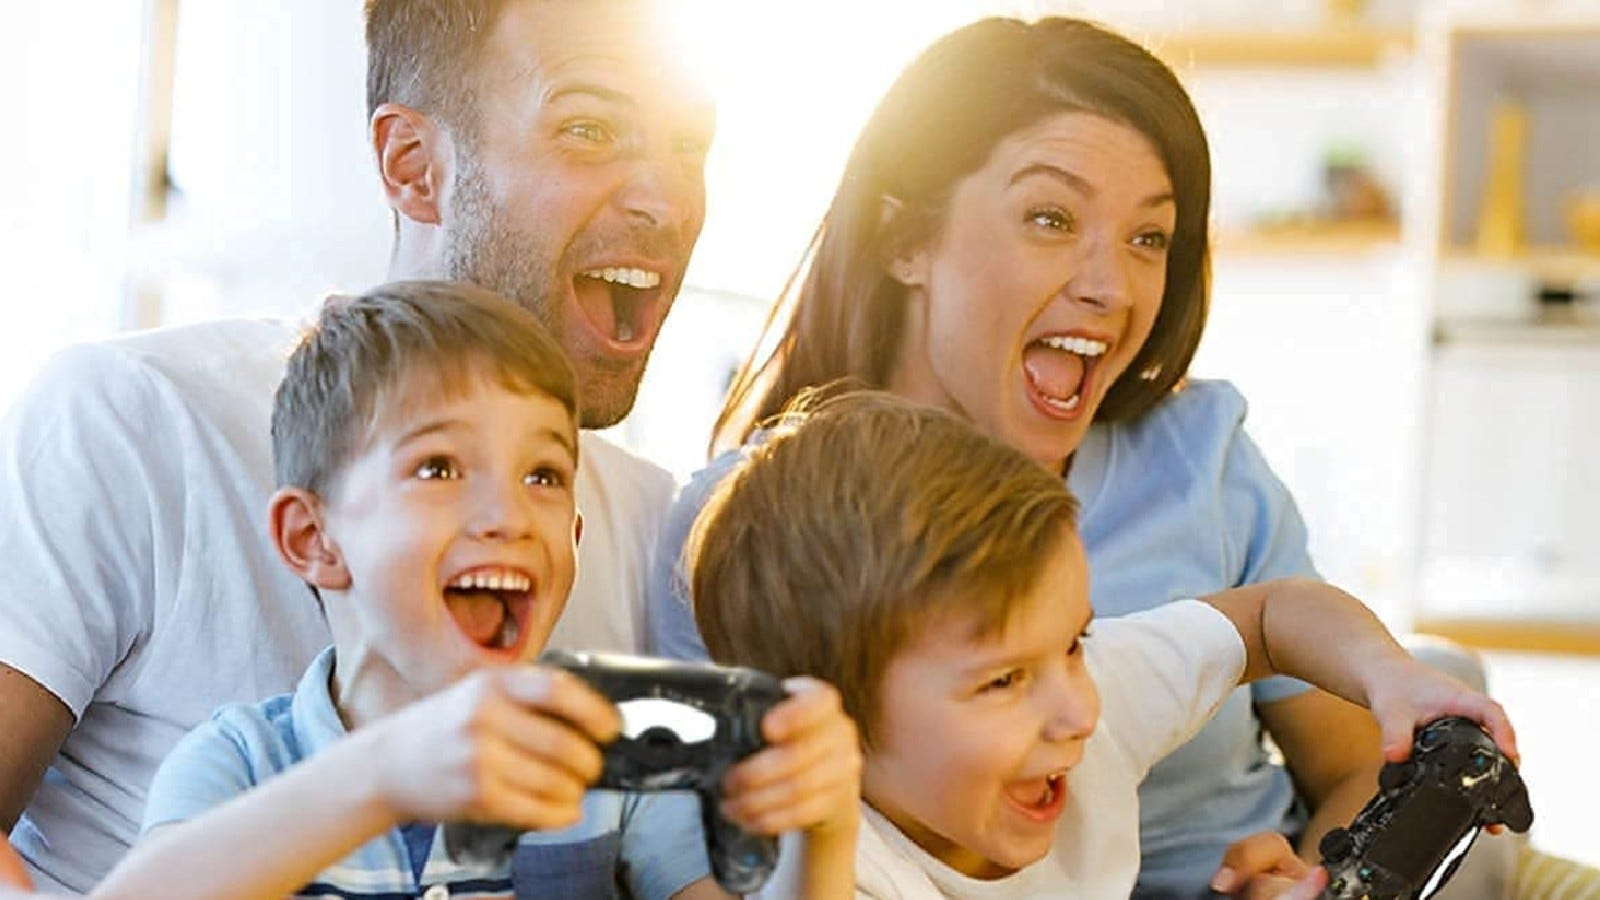 A family smiles at a video game while the young boys hold the controllers.